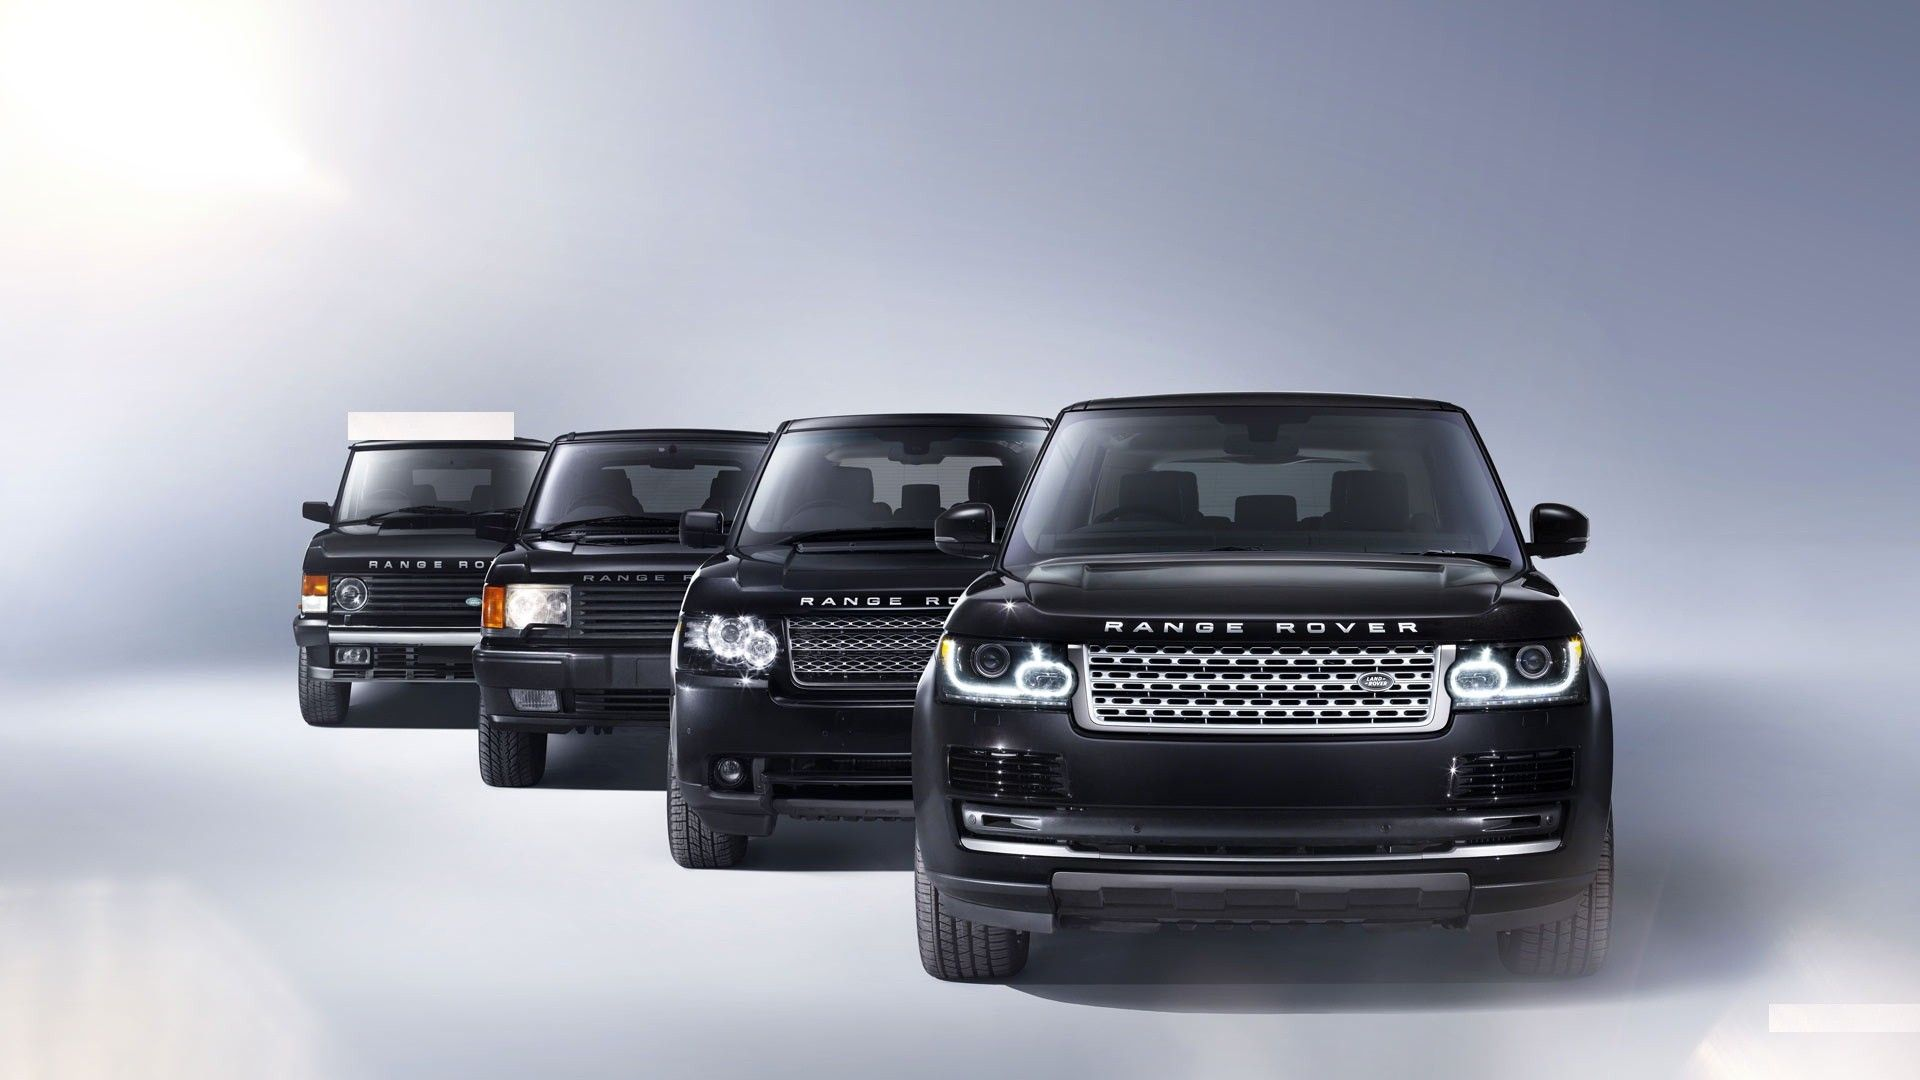 ... range rover wallpapers 6 ...